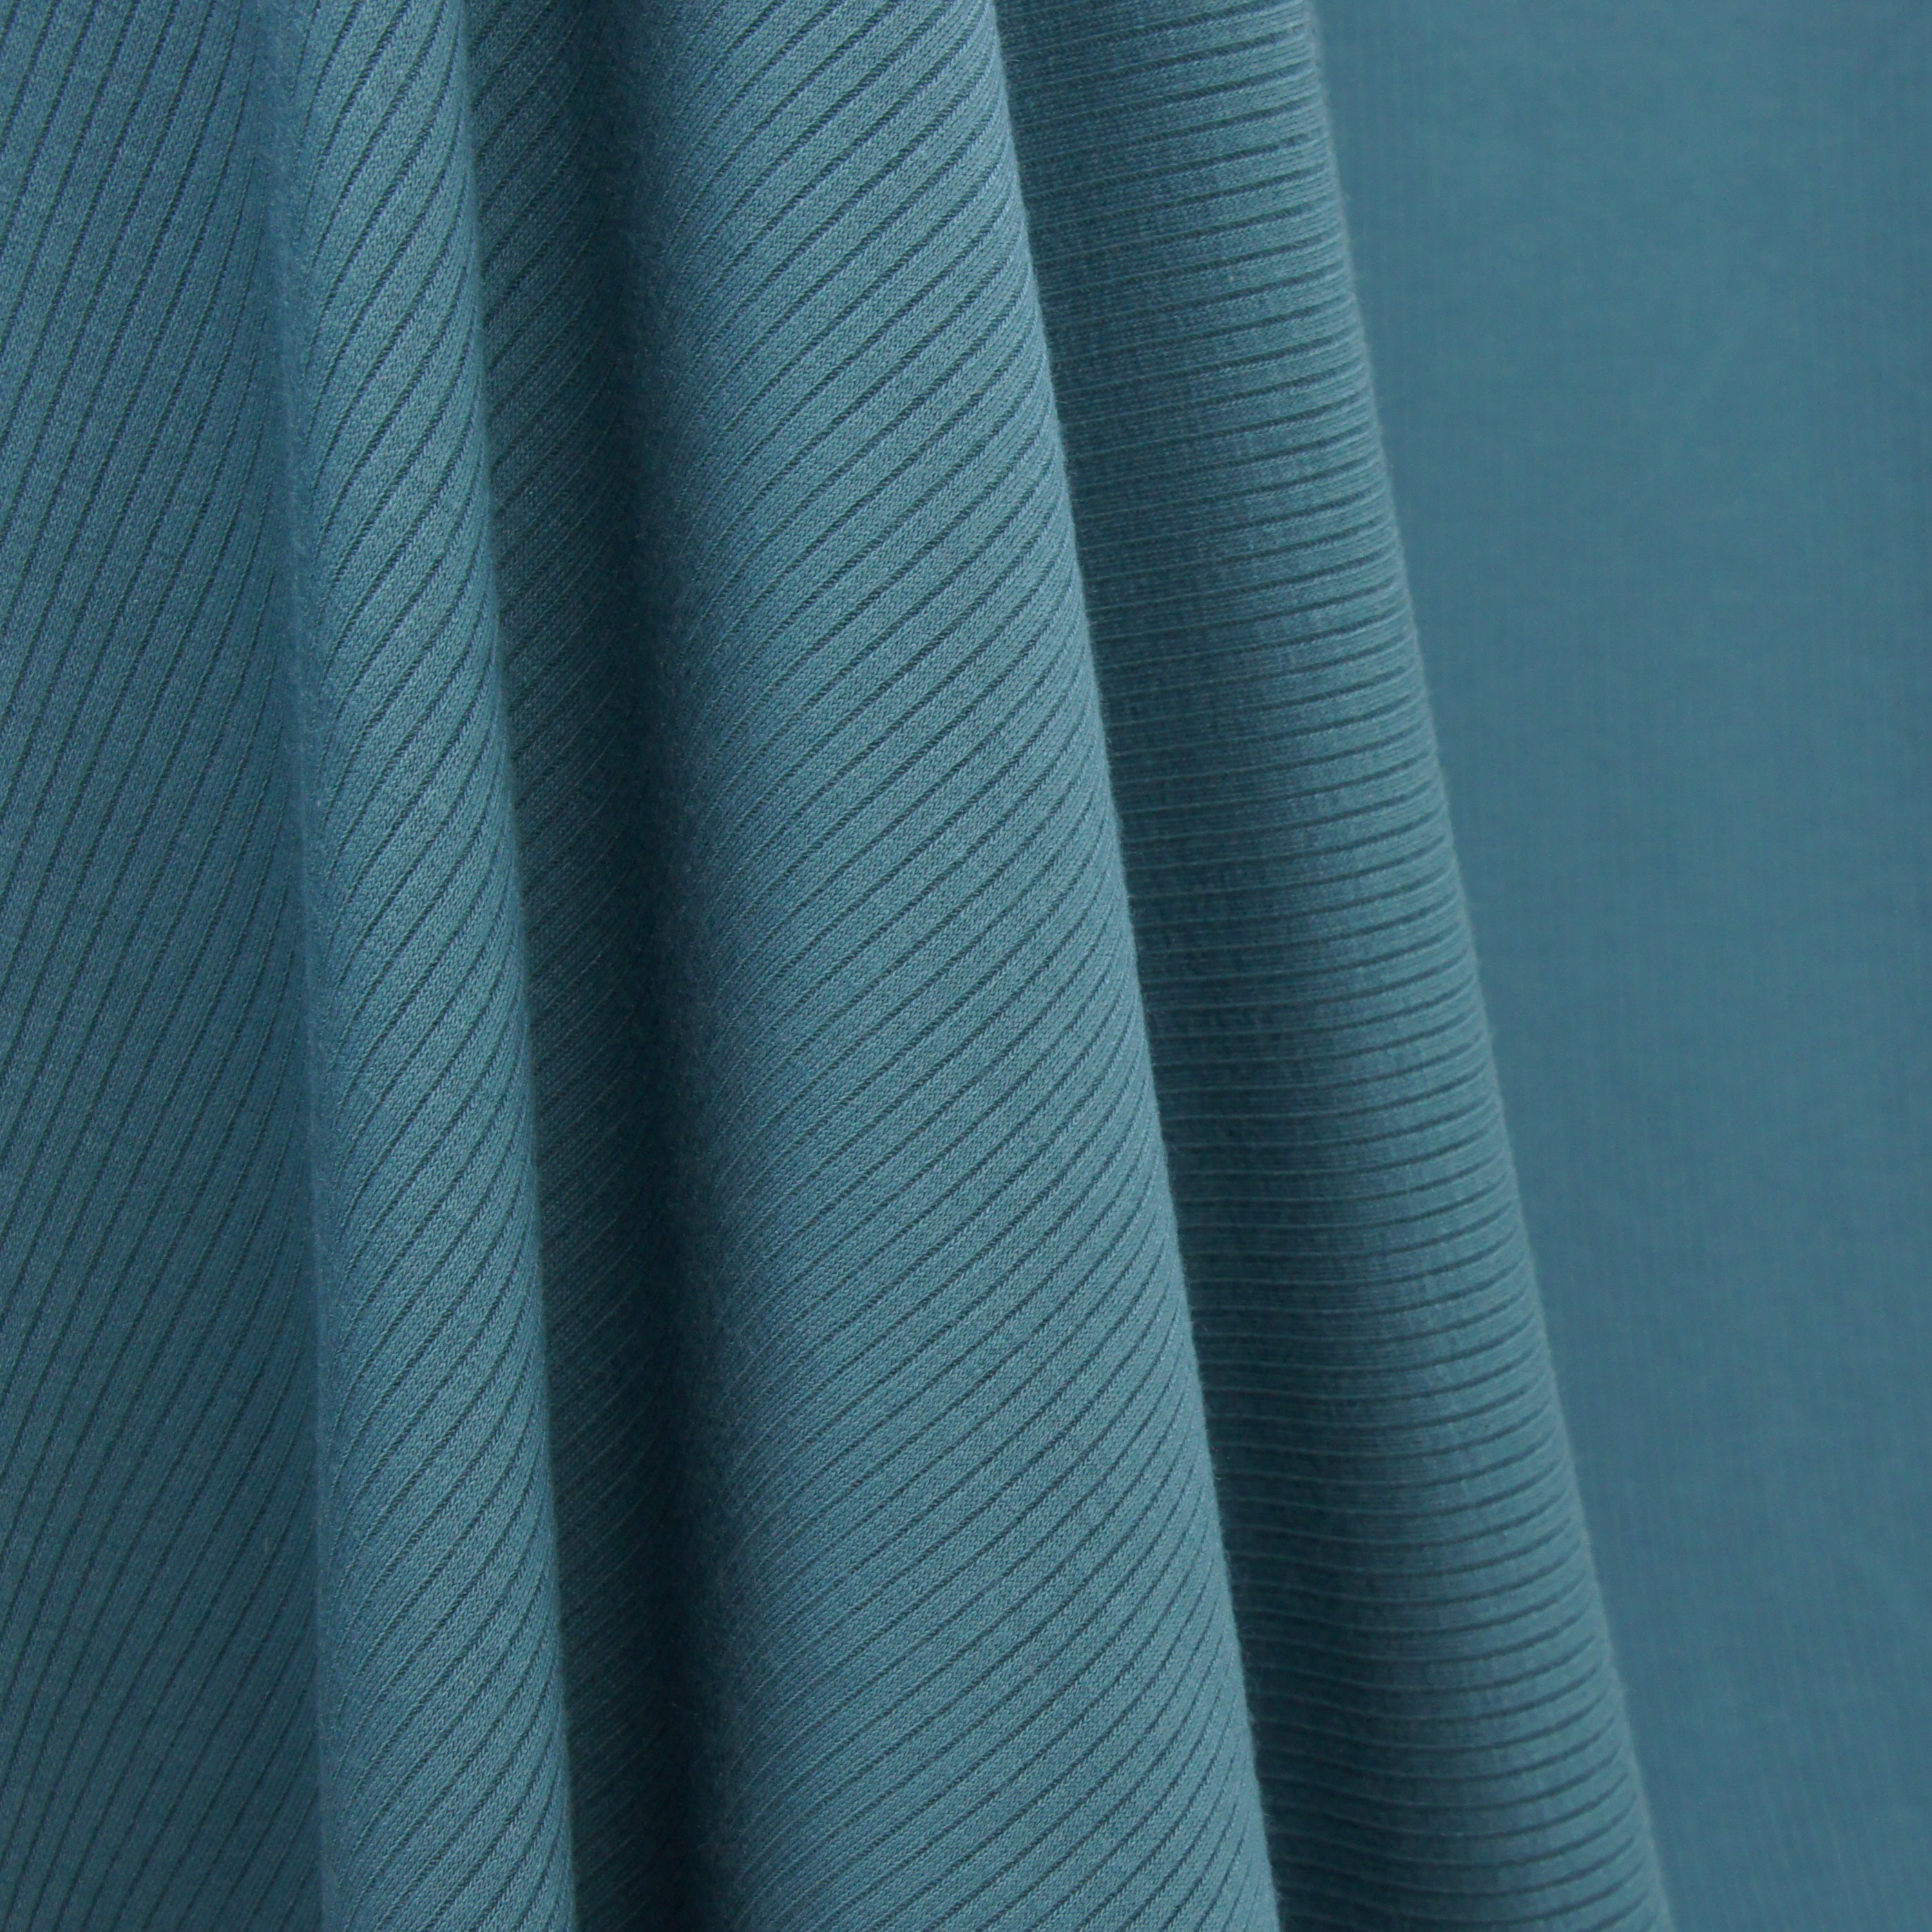 Tencel Modal Spandex Ribbed Knit - Teal Blue